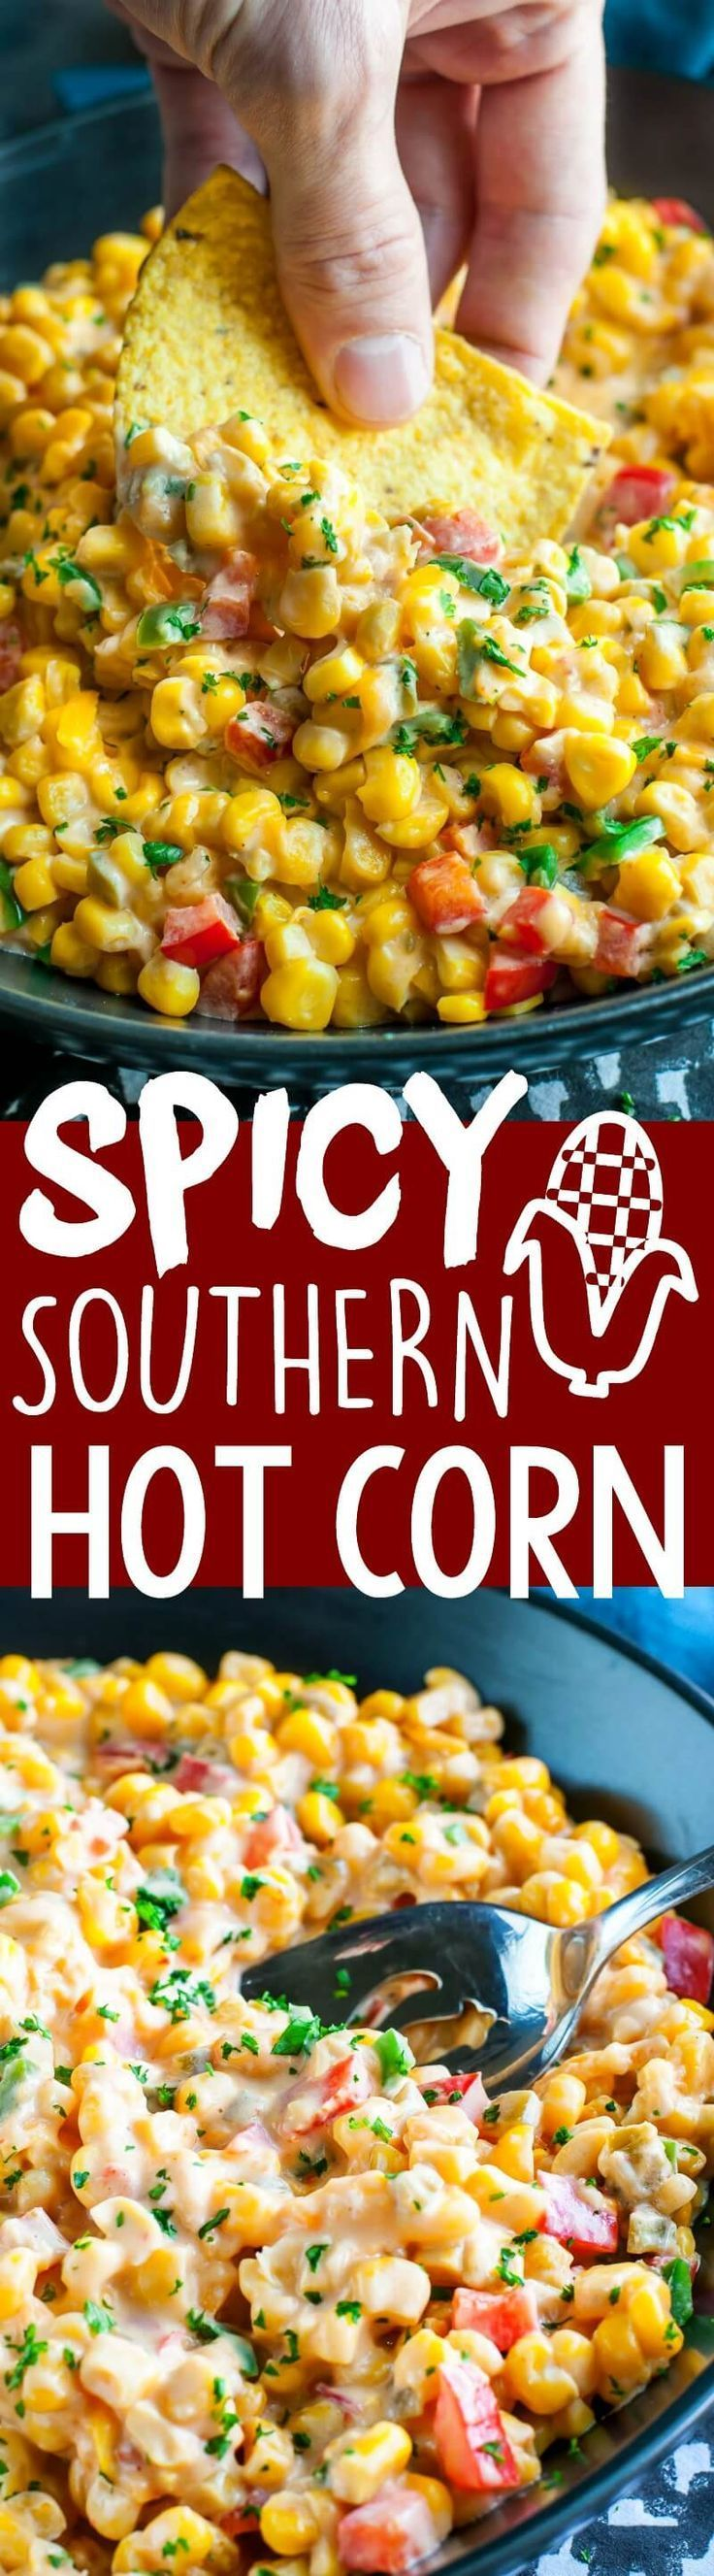 My husband BEGS for this Spicy Southern Hot Corn! This sassy Southern-style recipe has been part of our holiday meal tradition for years and doubles as a side dish AND a dip!